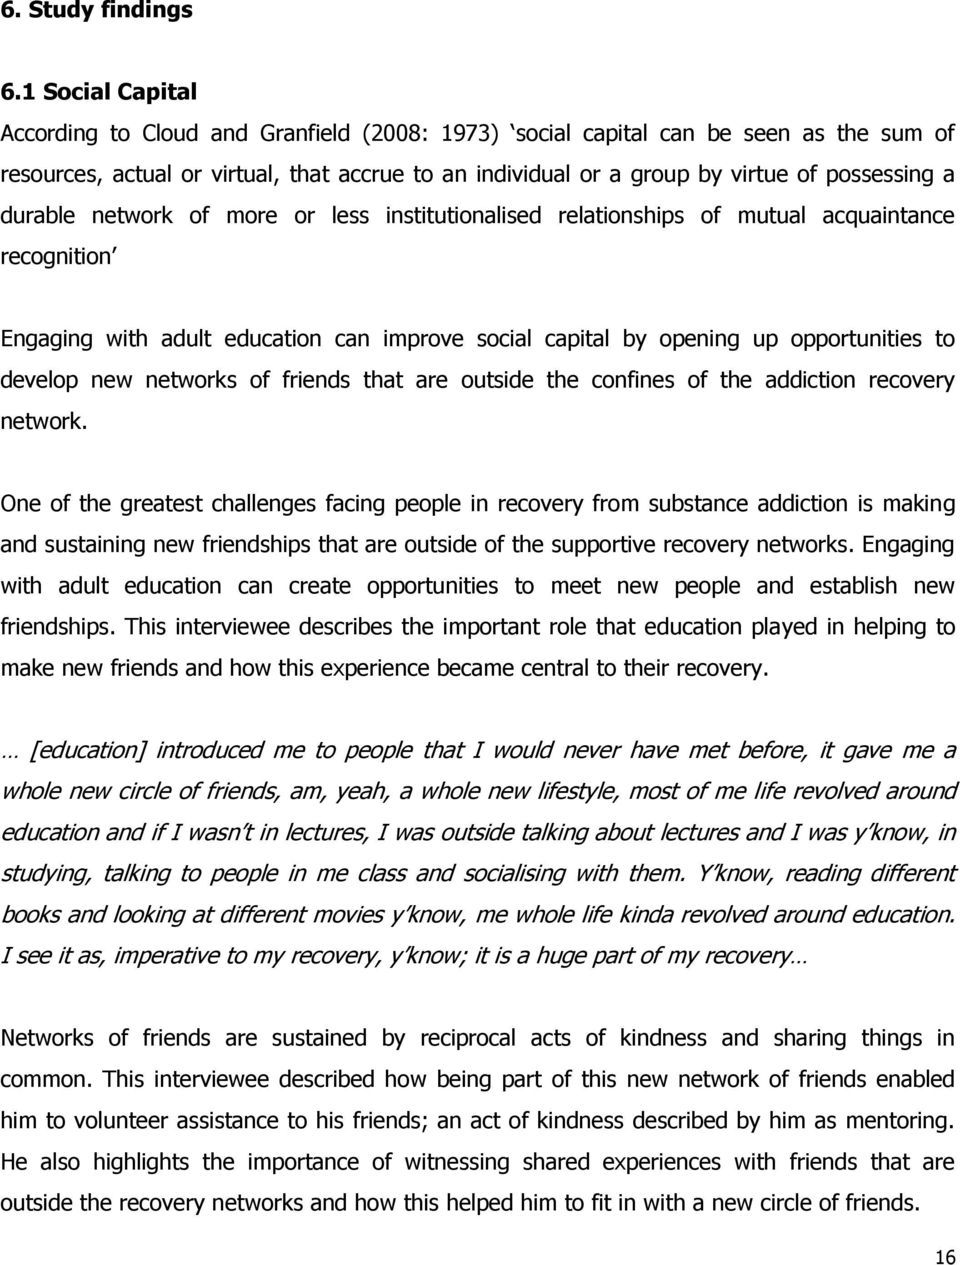 durable network of more or less institutionalised relationships of mutual acquaintance recognition Engaging with adult education can improve social capital by opening up opportunities to develop new